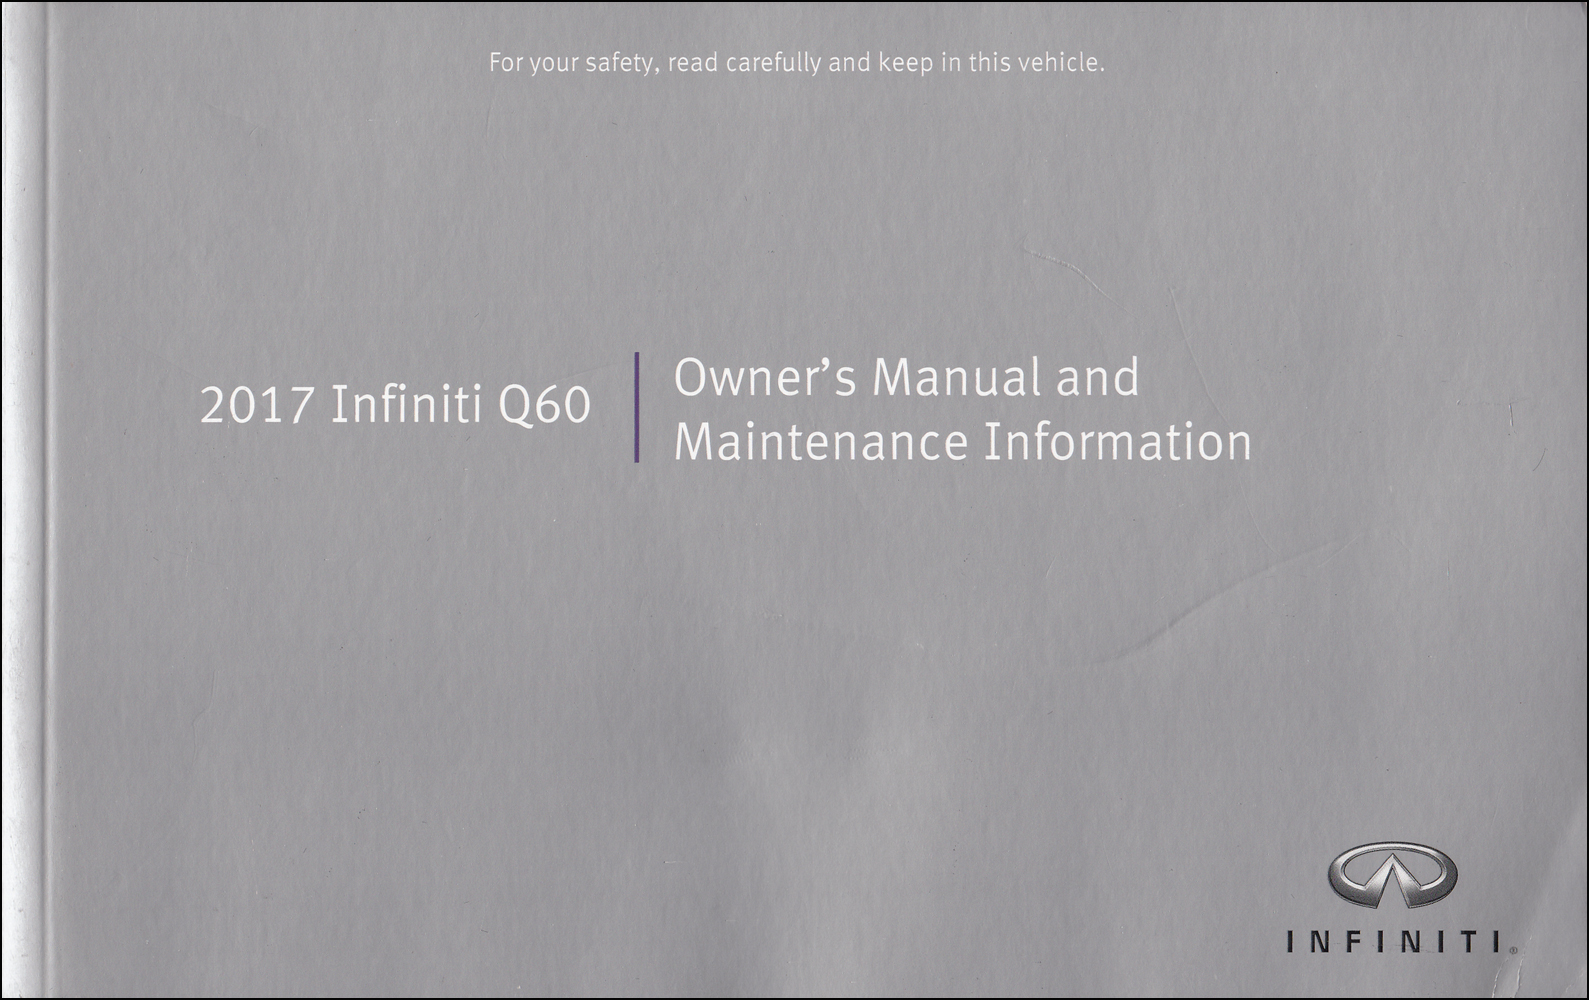 2017 Infiniti Q60 Owner's Manual Original